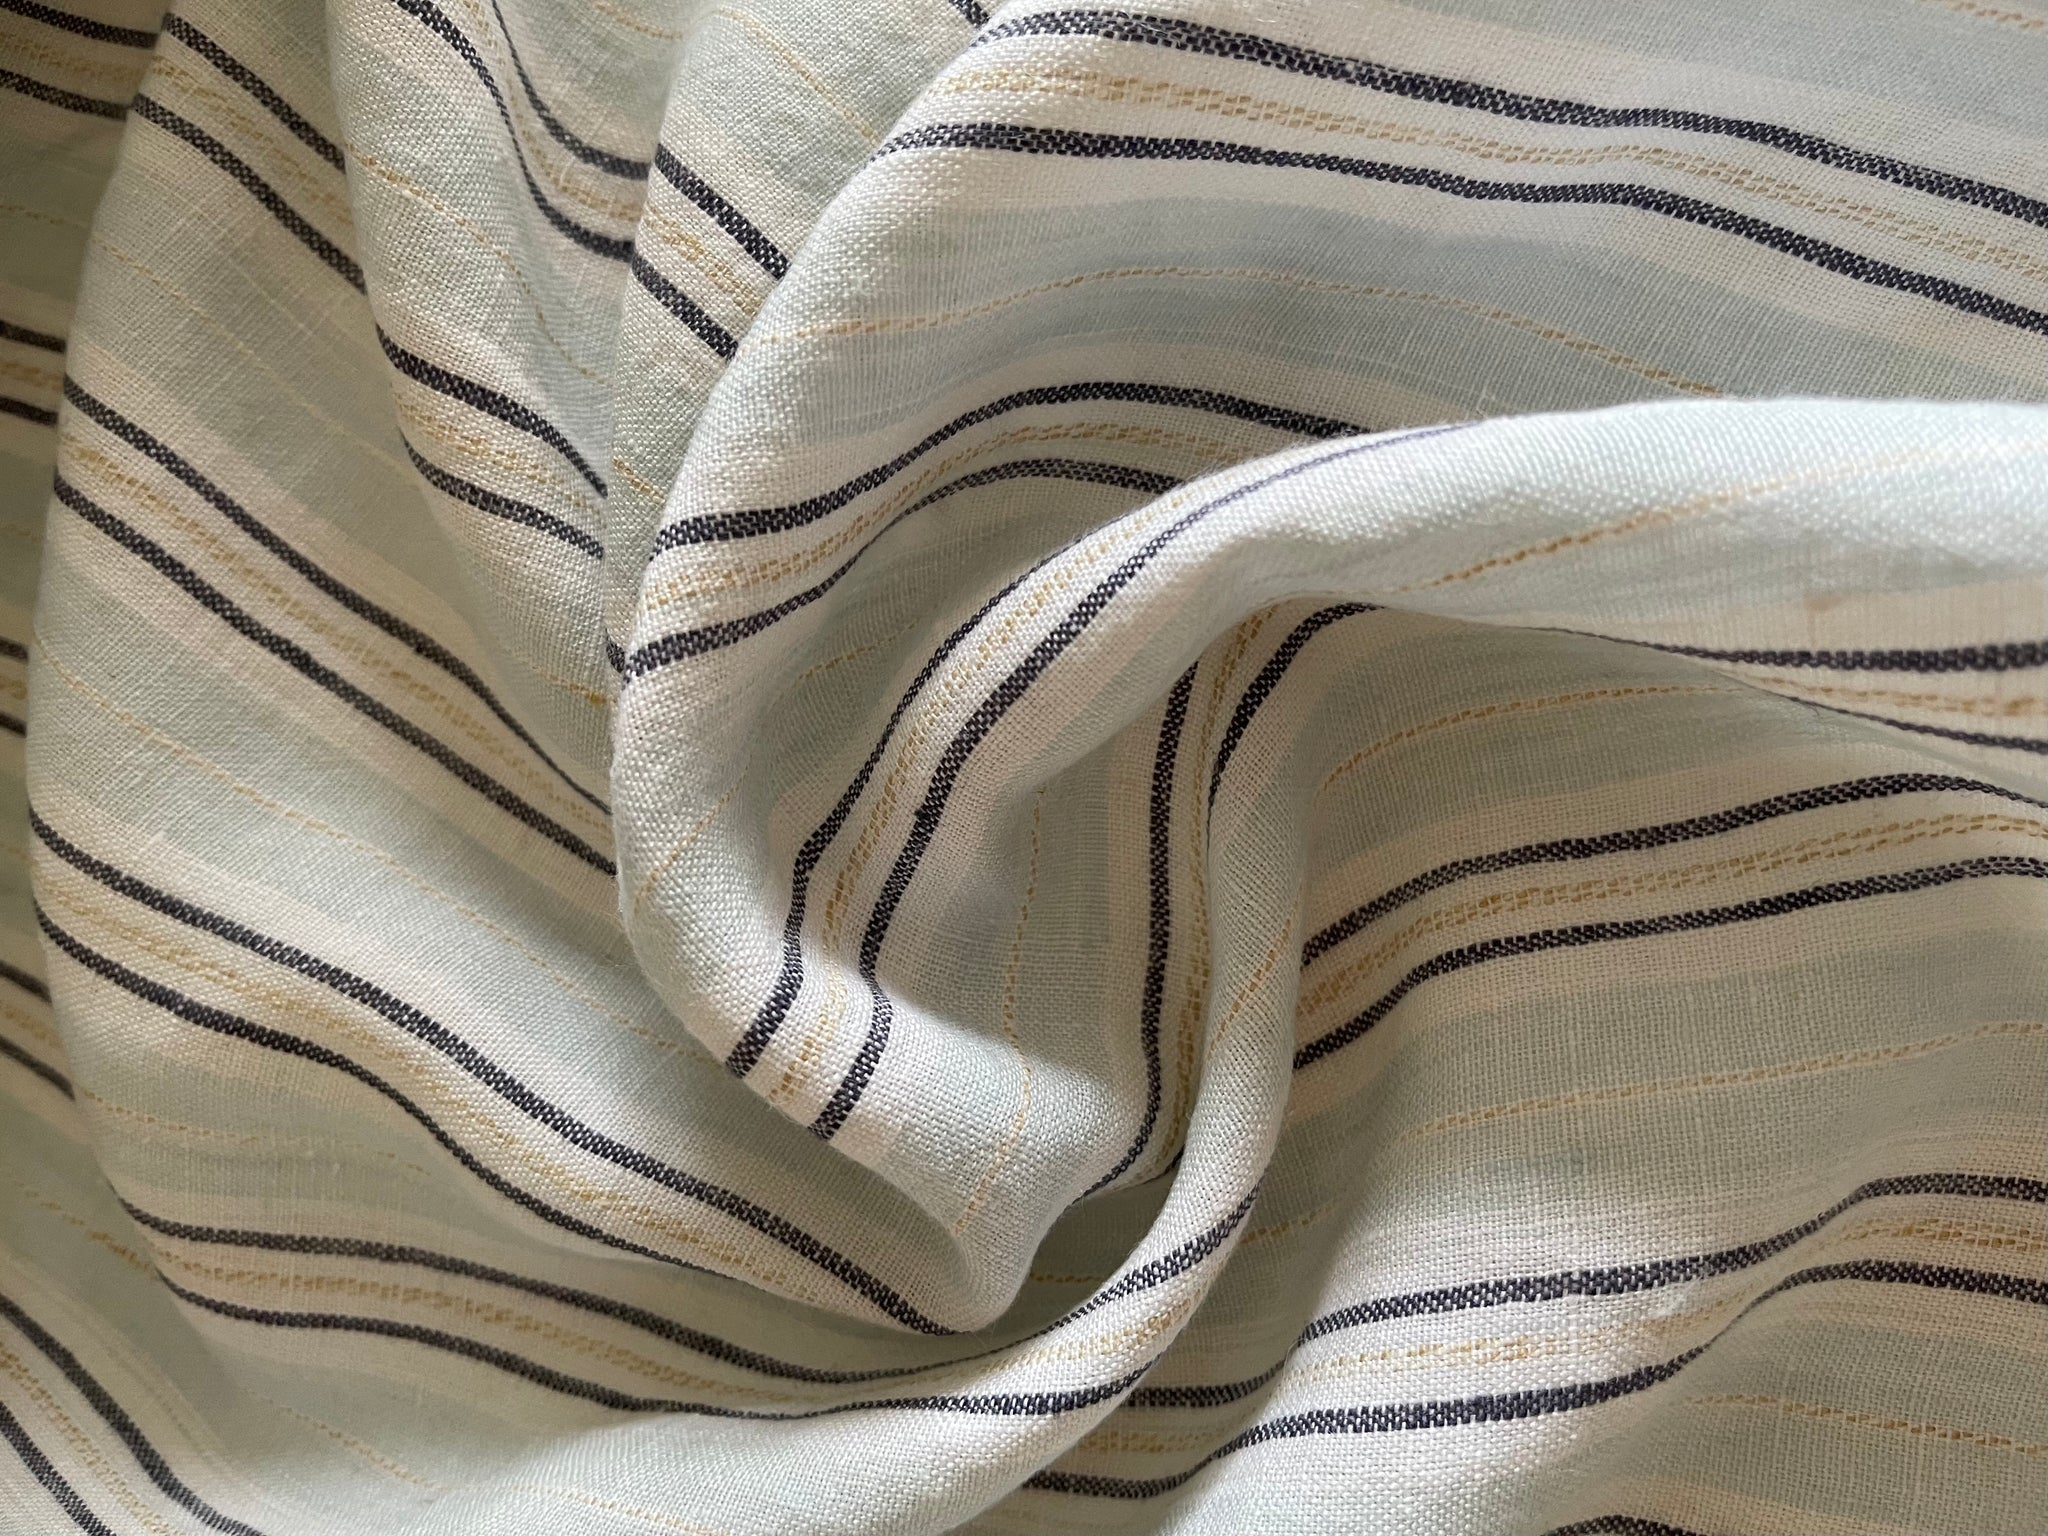 Sky Blue Stripes Linen Fabric - Stone Washed Super Soft